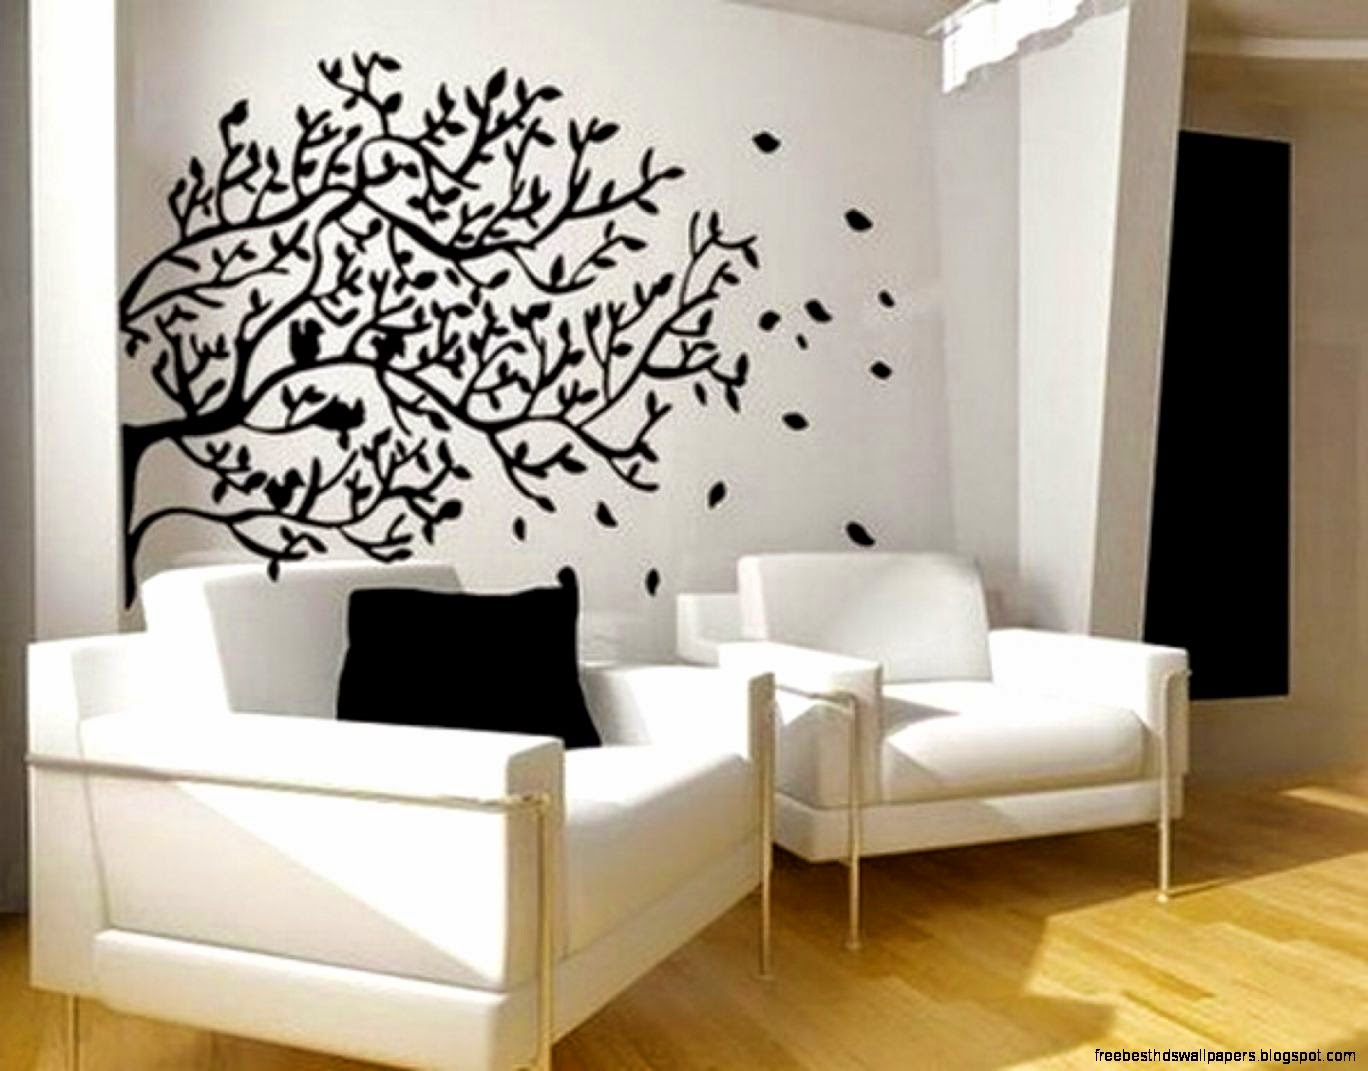 View Original Size. Kids Room Wall Murals Ideas Easy On The Eye Wall  Muralsmodern Awesome Design